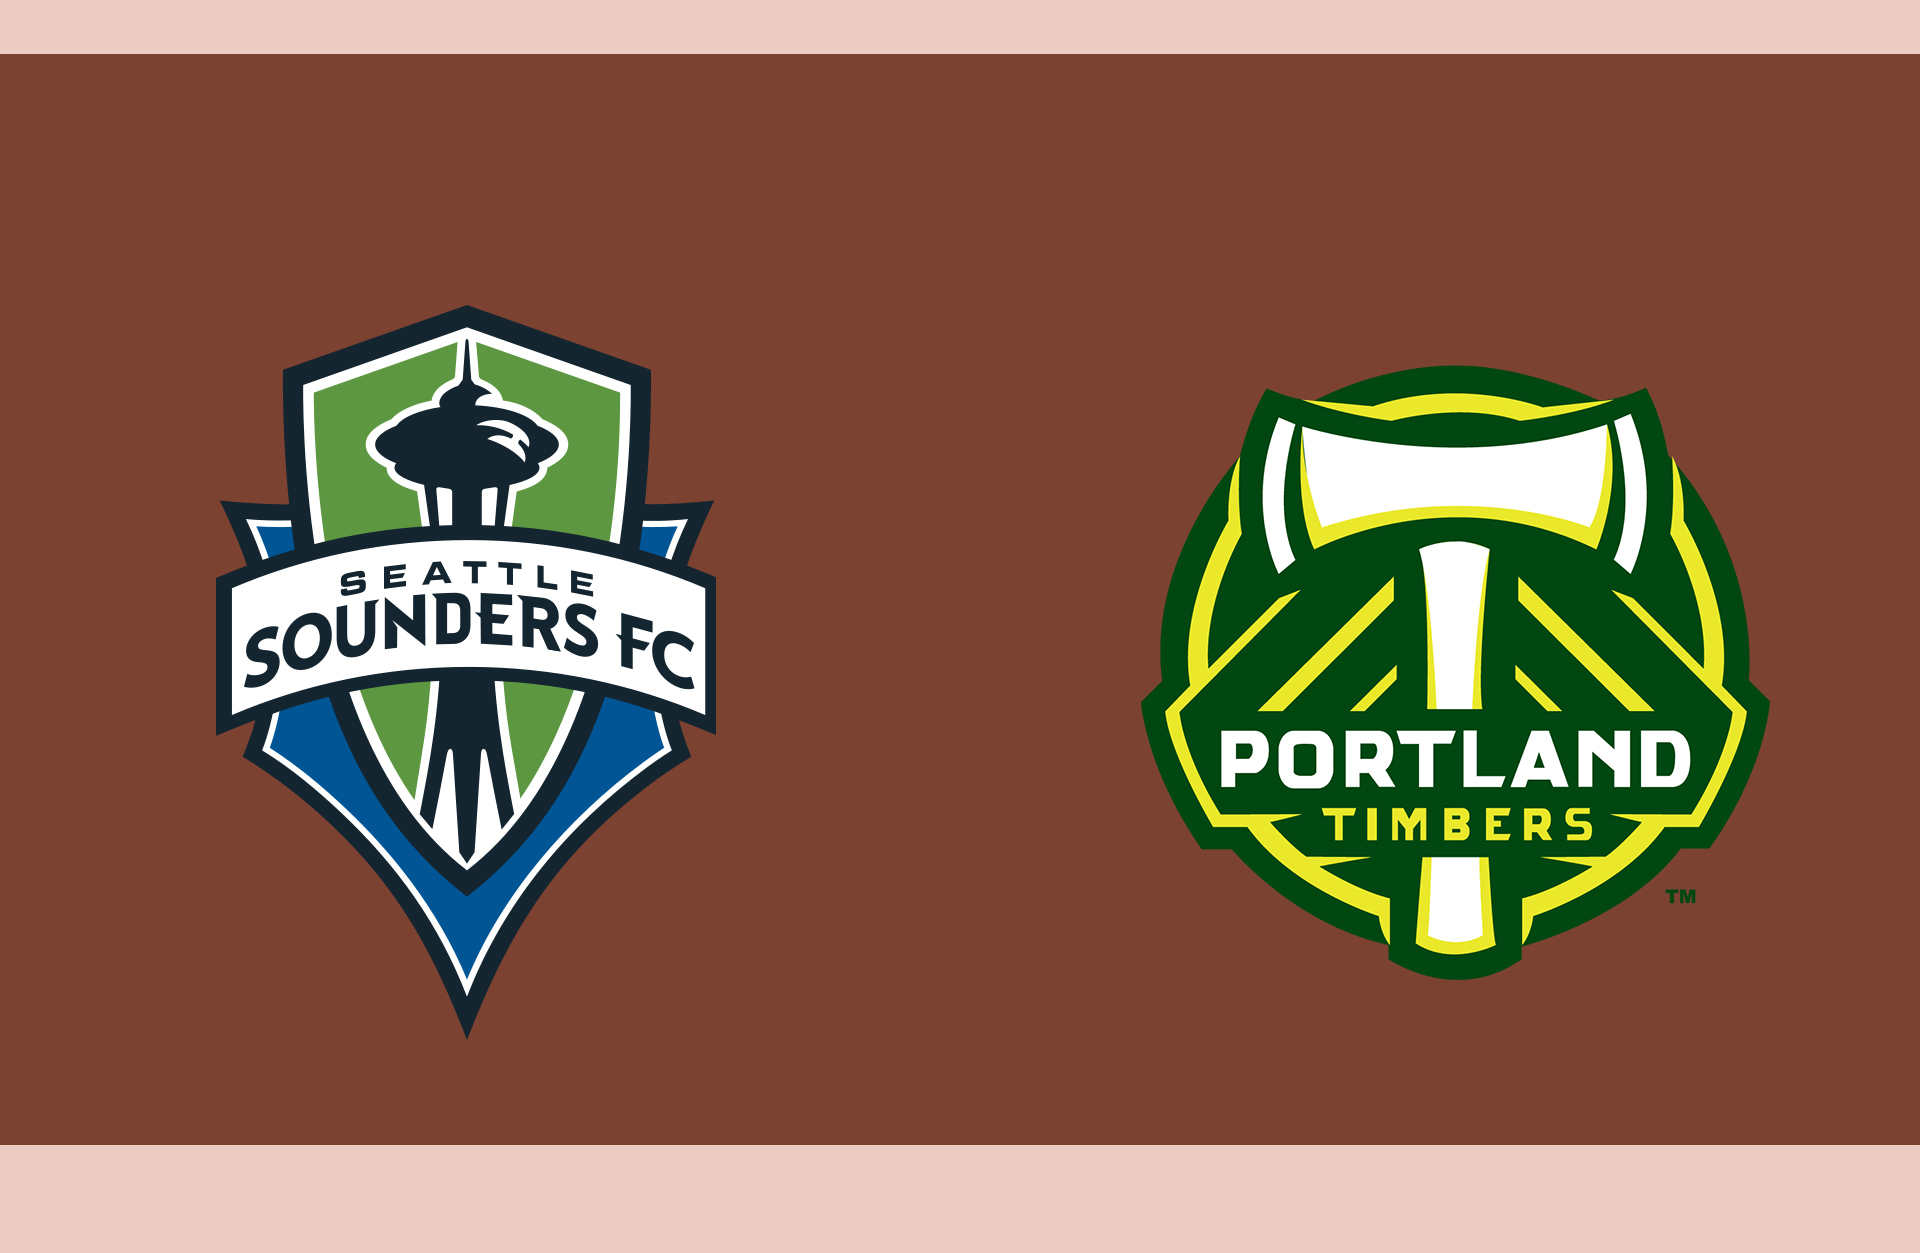 seattle-sounders-vs-portland-timbers-tip-bong-da-9-11-2018 1